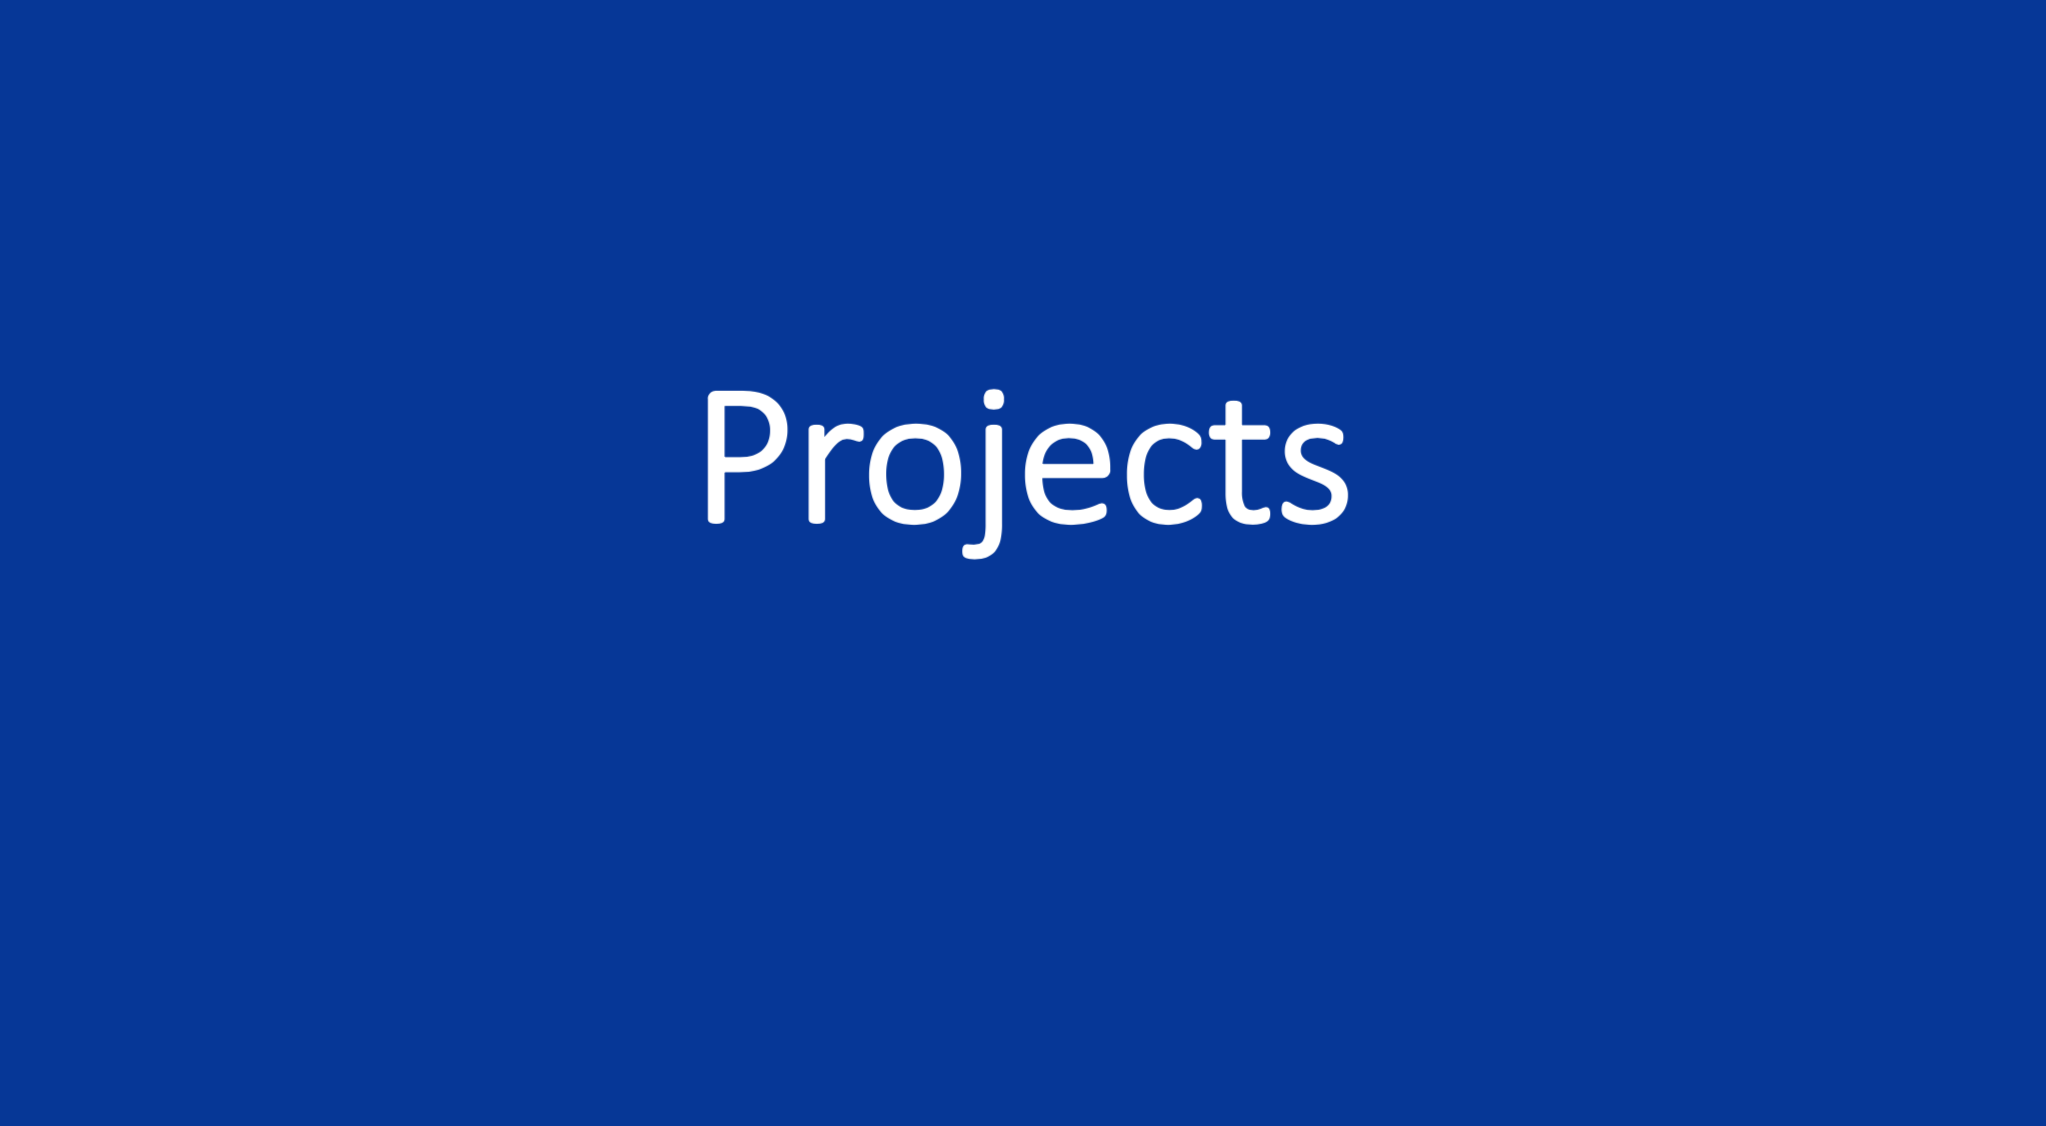 Projects BIC